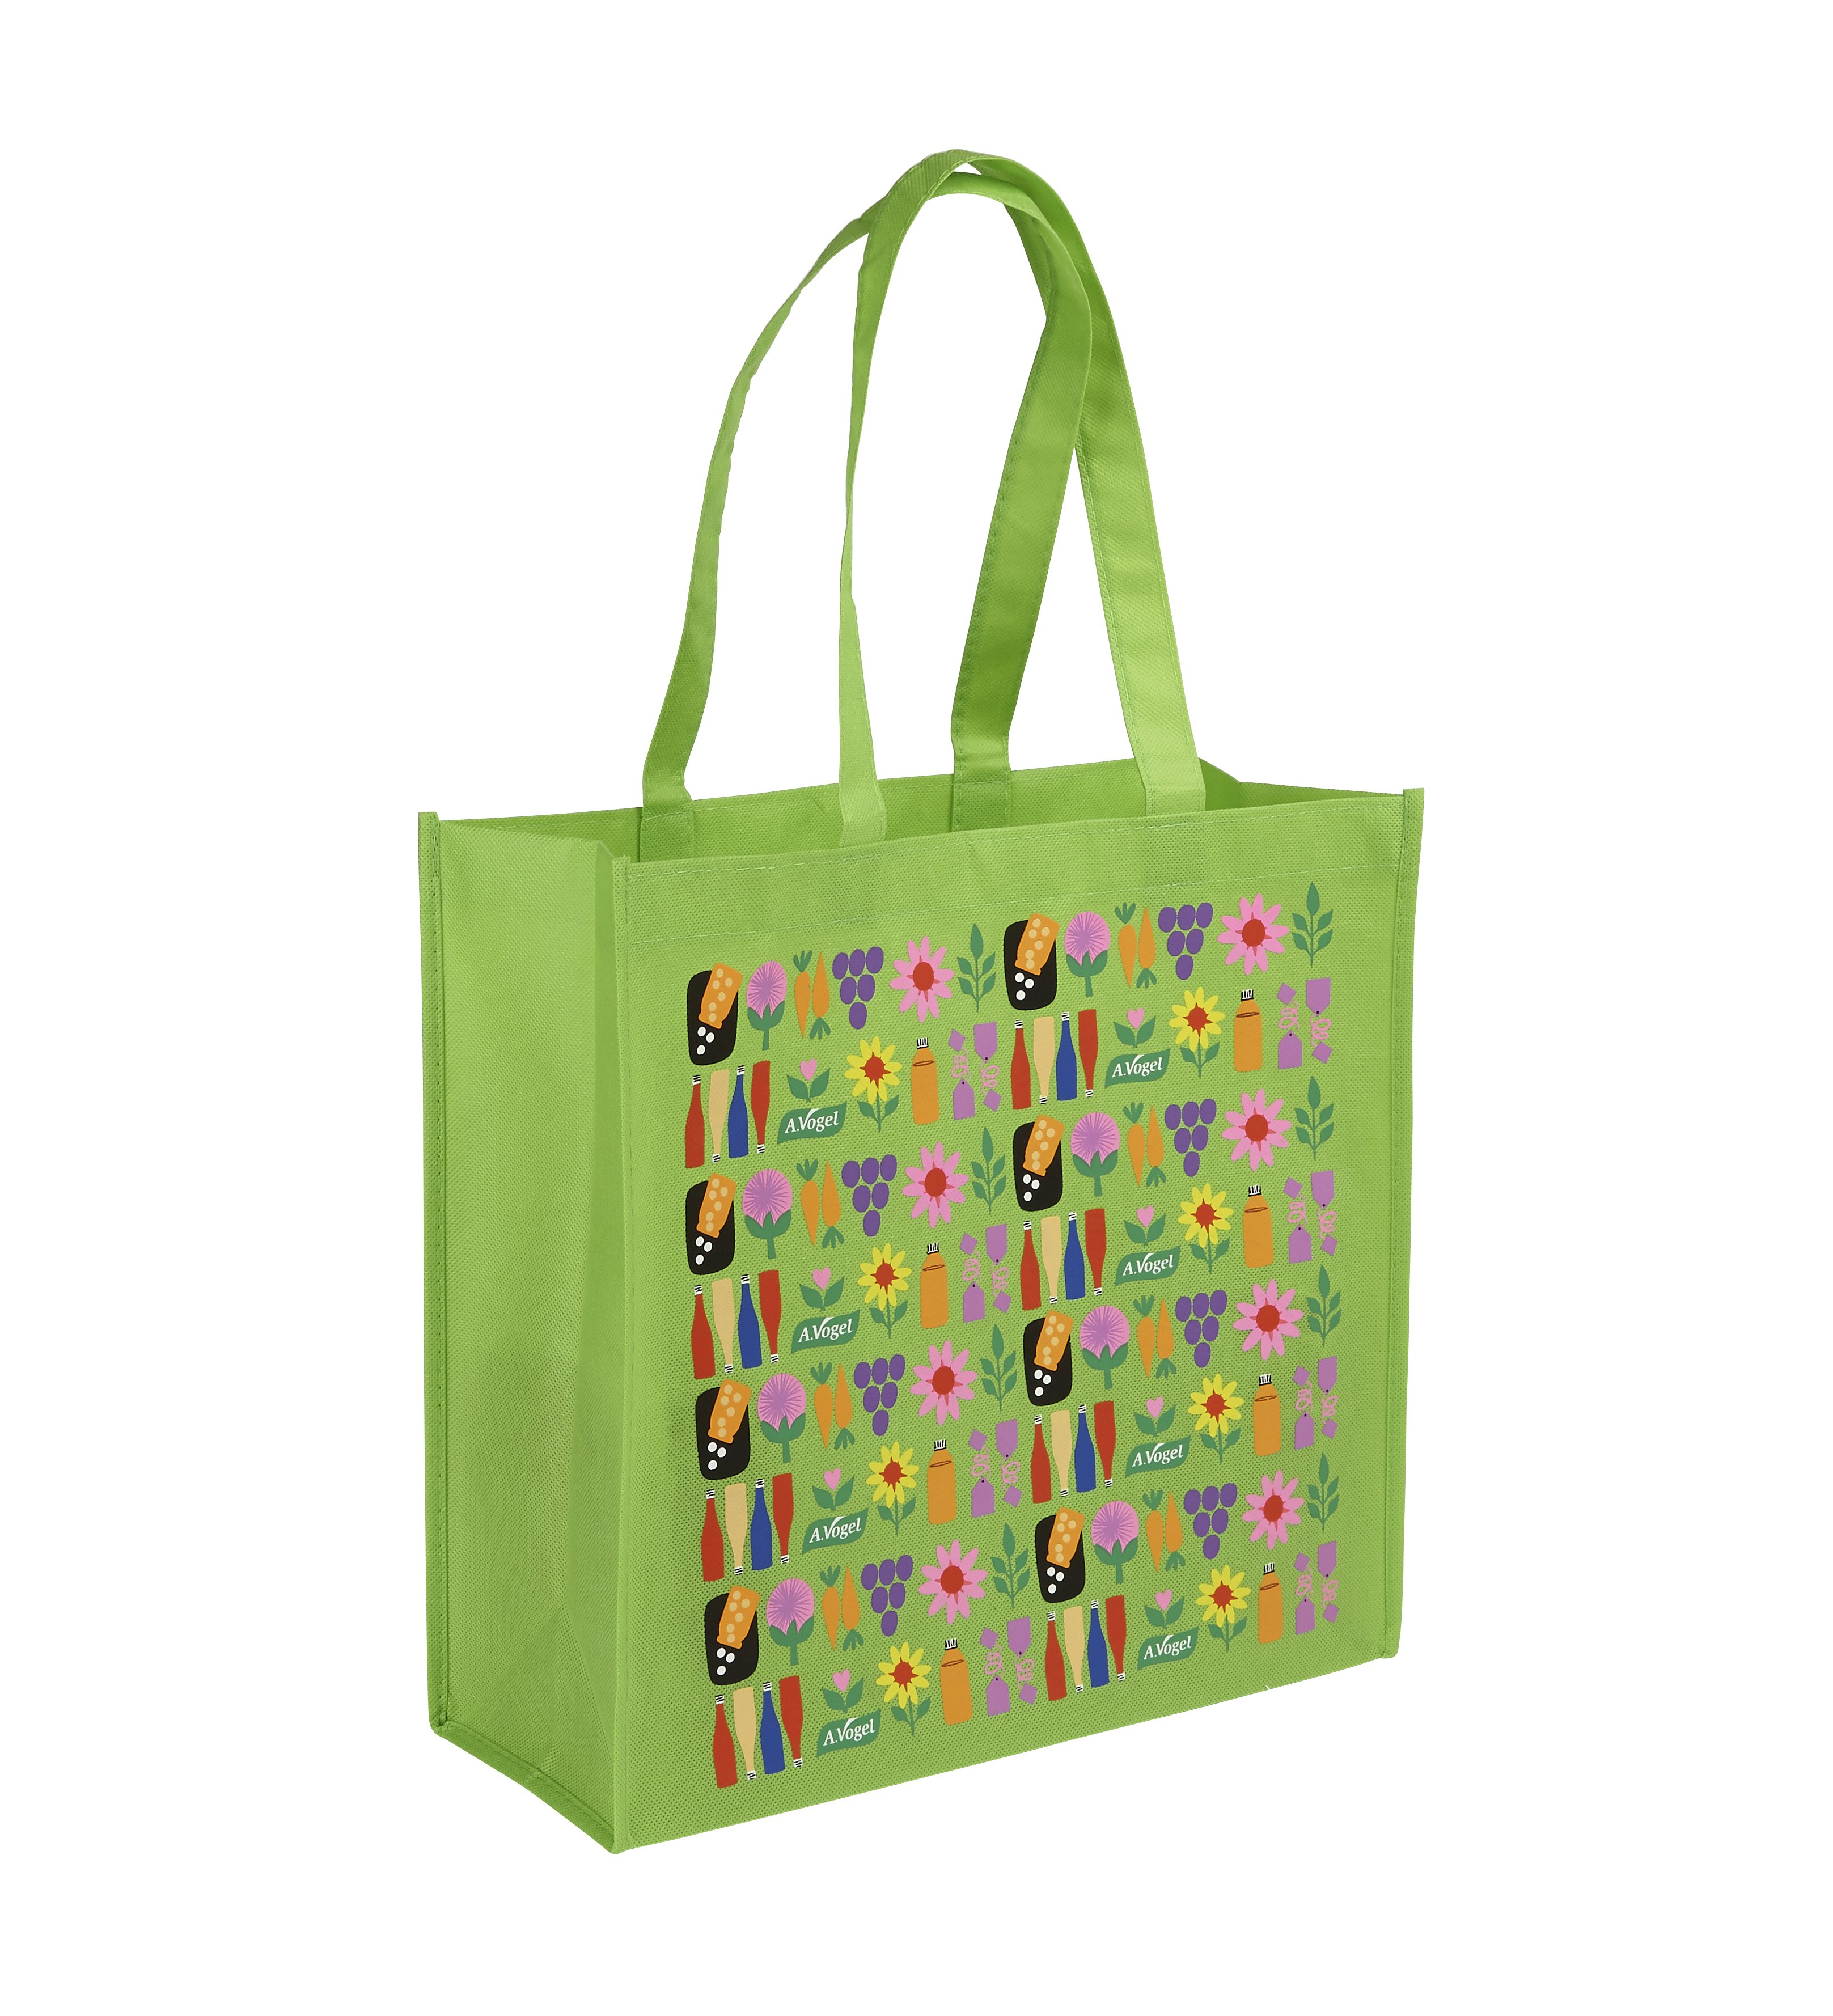 Floral Print Green Now Woven PP Bag